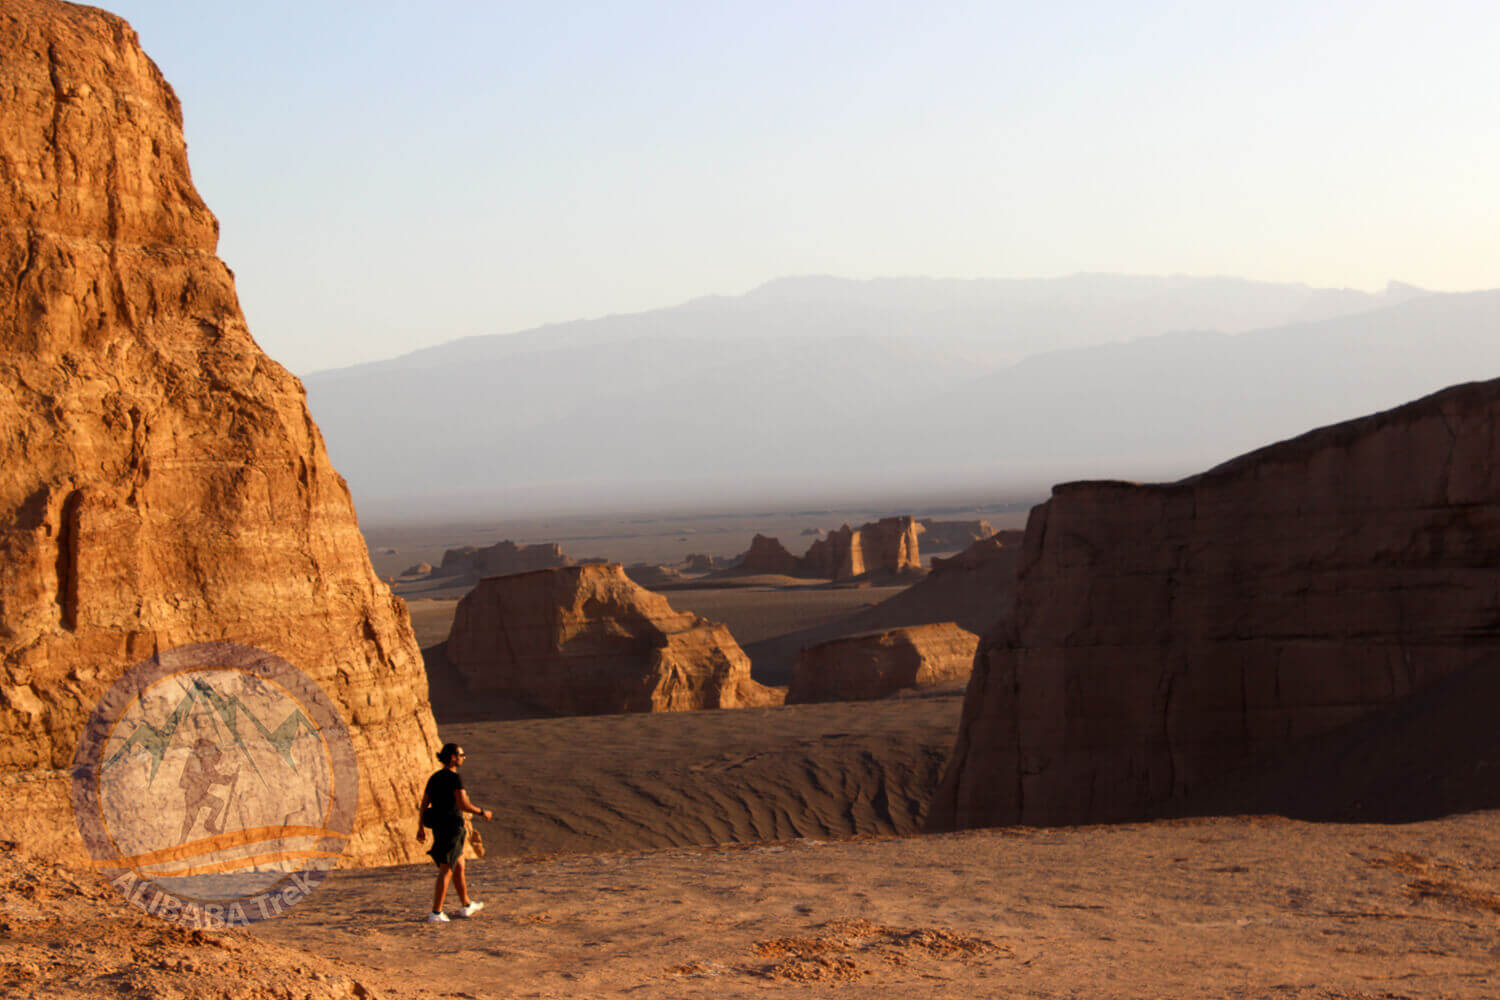 Alibabatrek iran deserts and culture tour desert 3